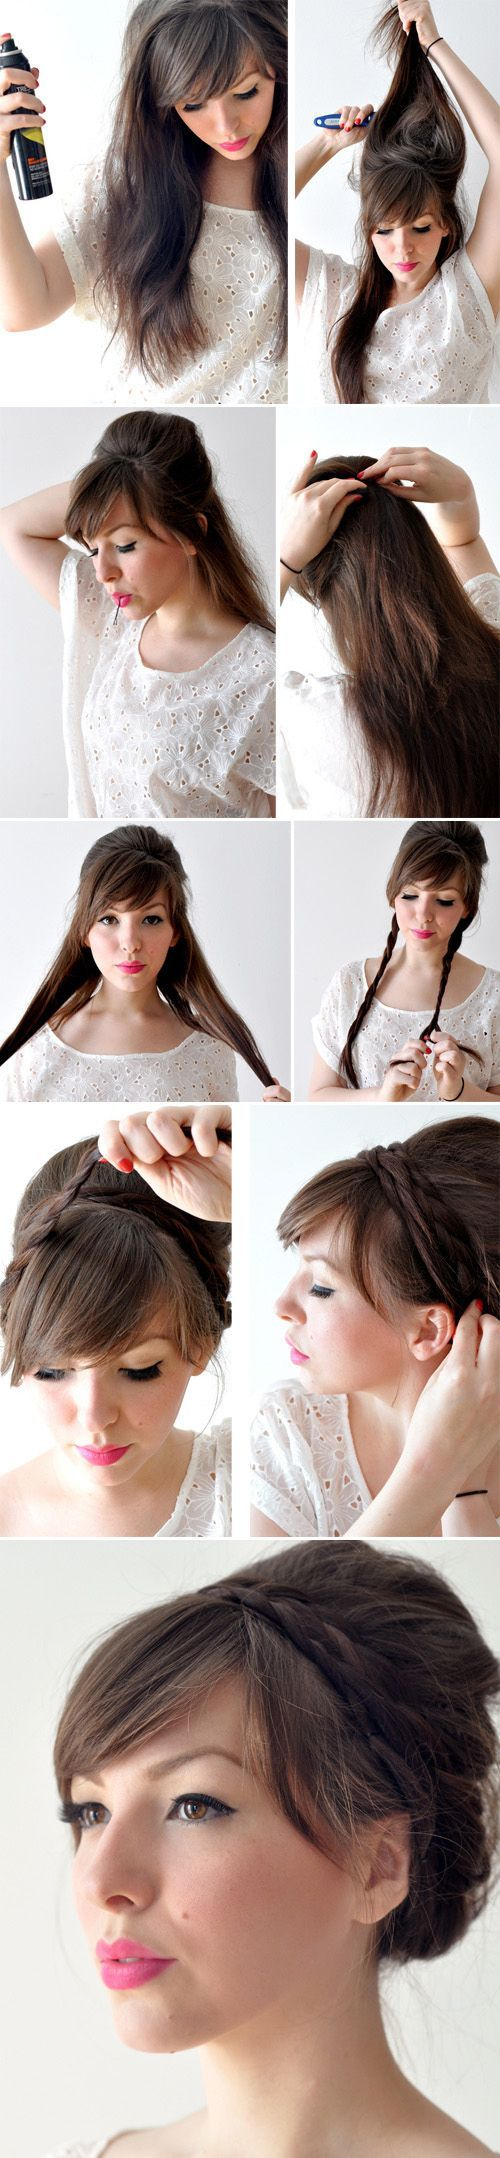 ways to style beautiful summer hairstyles updo updos and hair